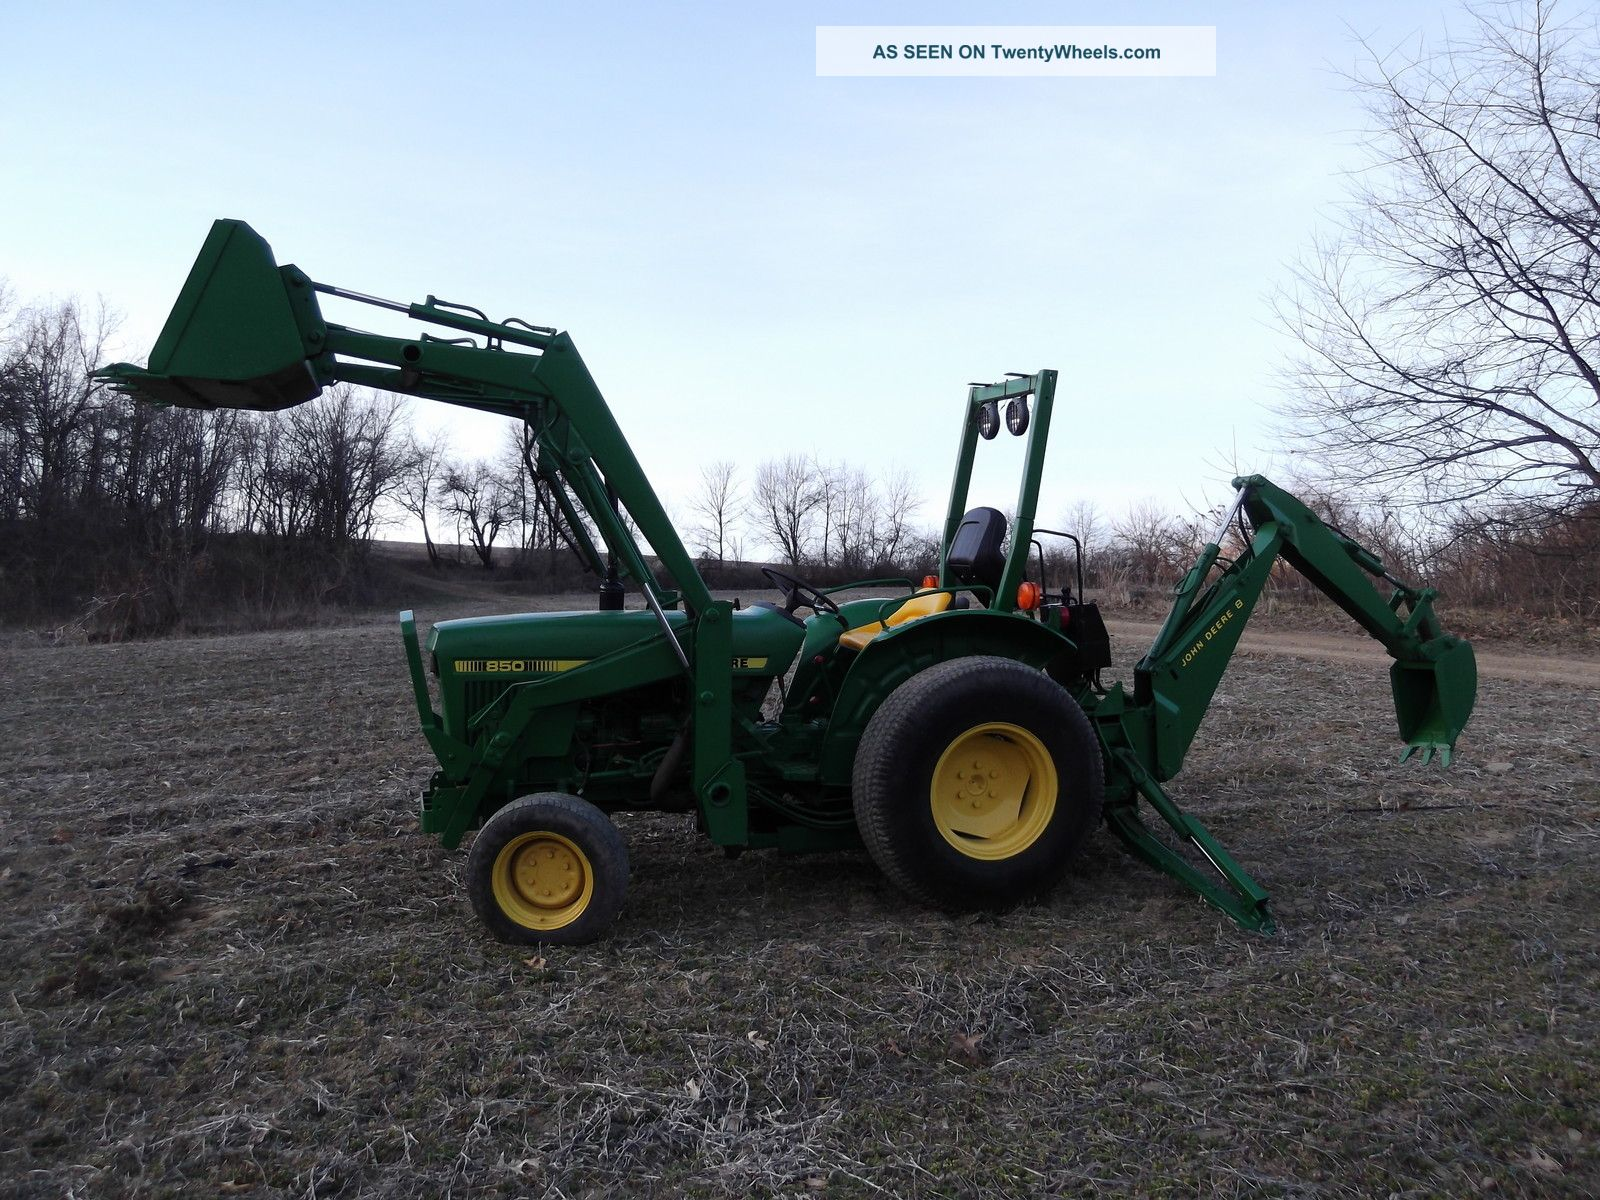 John Deere 110tlb Service Manual Ignition Switch Wiring Diagram Additionally 110 Tlb Backhoe Array Tractor Loader Food Is Medicine Volume Three Rh Crystalclear Tk